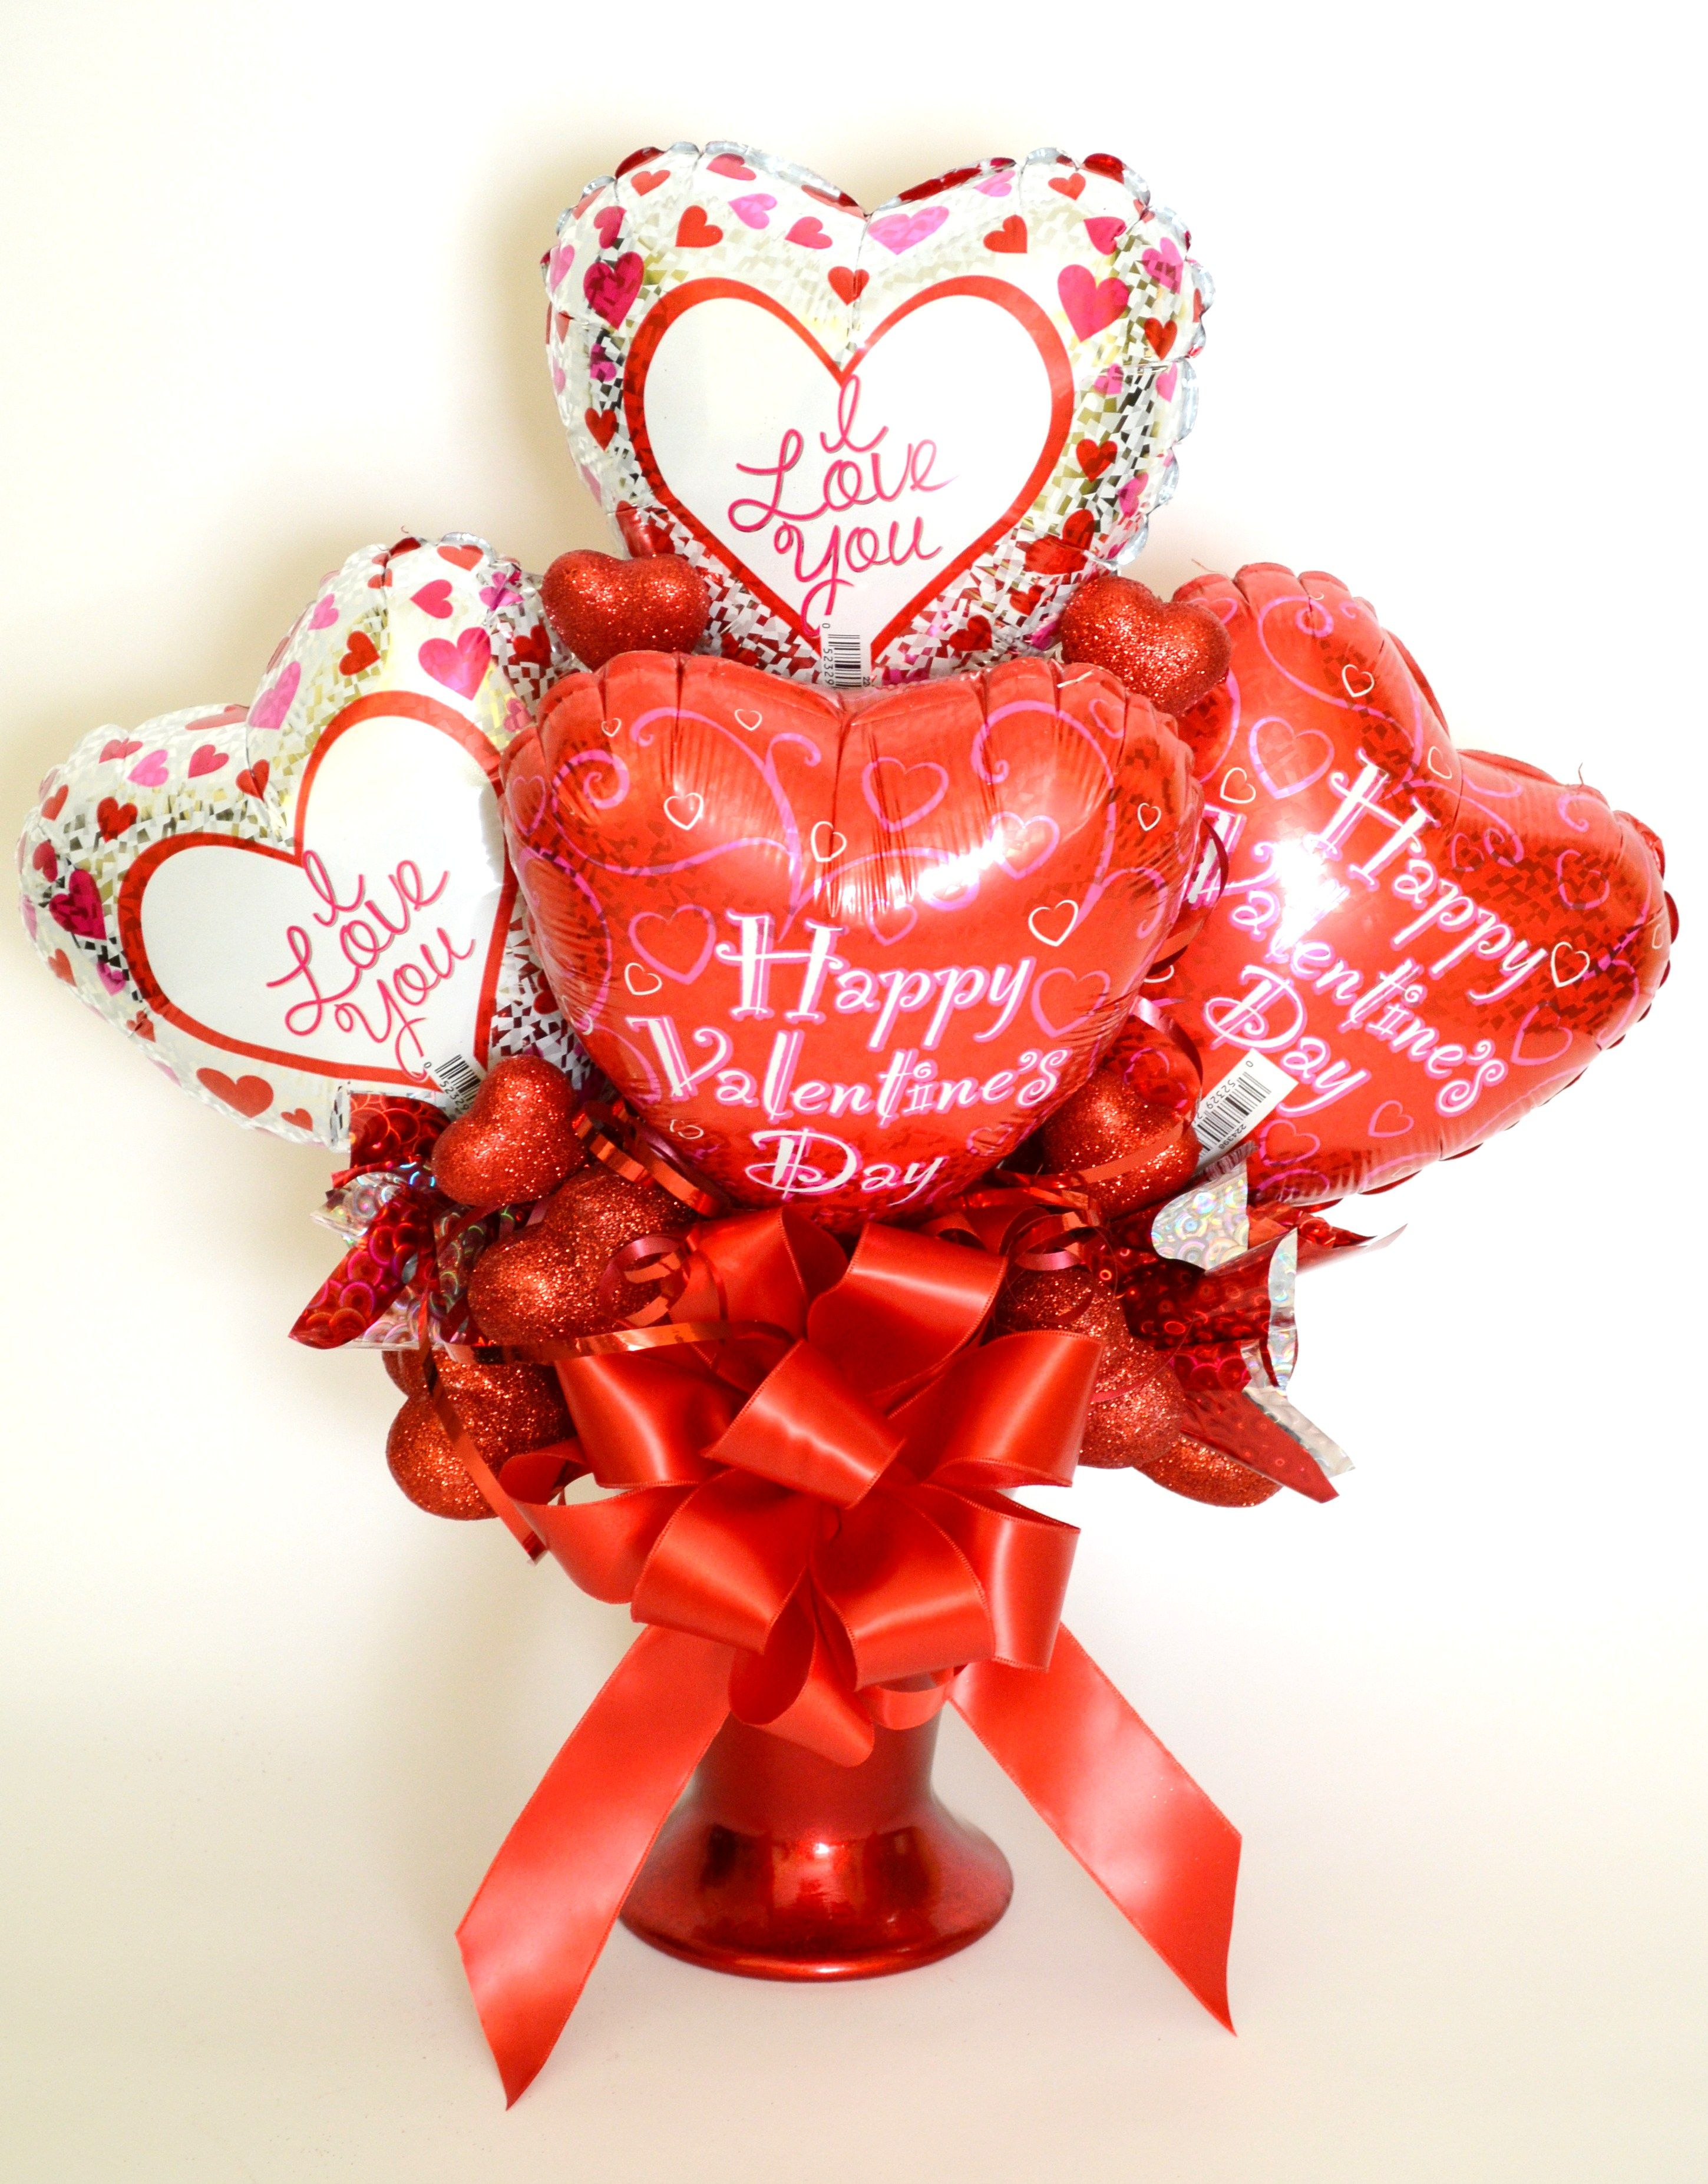 Roses Valentine S Day With Stuff Toys : Reversible valentine s day balloon bouquet side